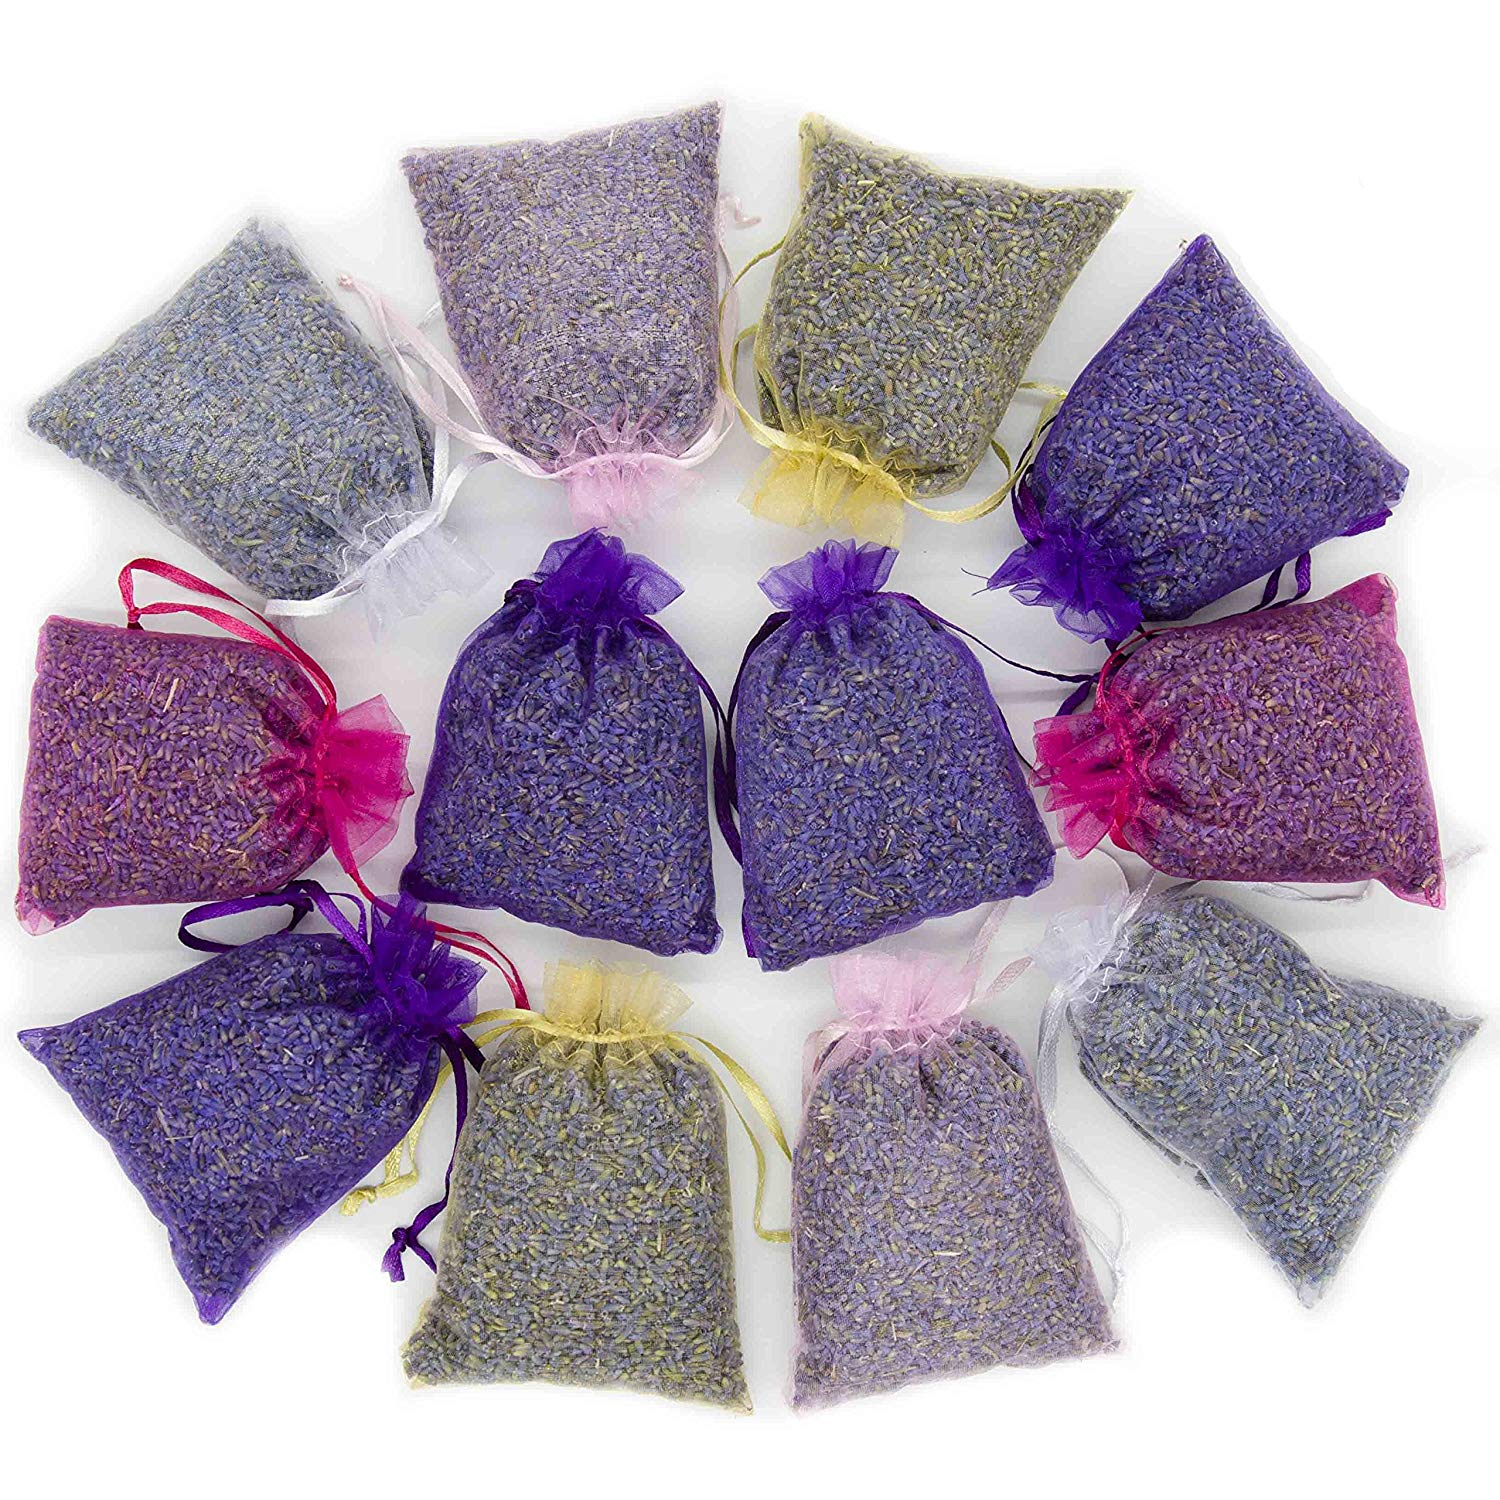 D'vine Dev French Lavender 12 Sachets Bag - Dried Lavender Flower Buds - 5 Colors Sachets with Easy Resealable Bag